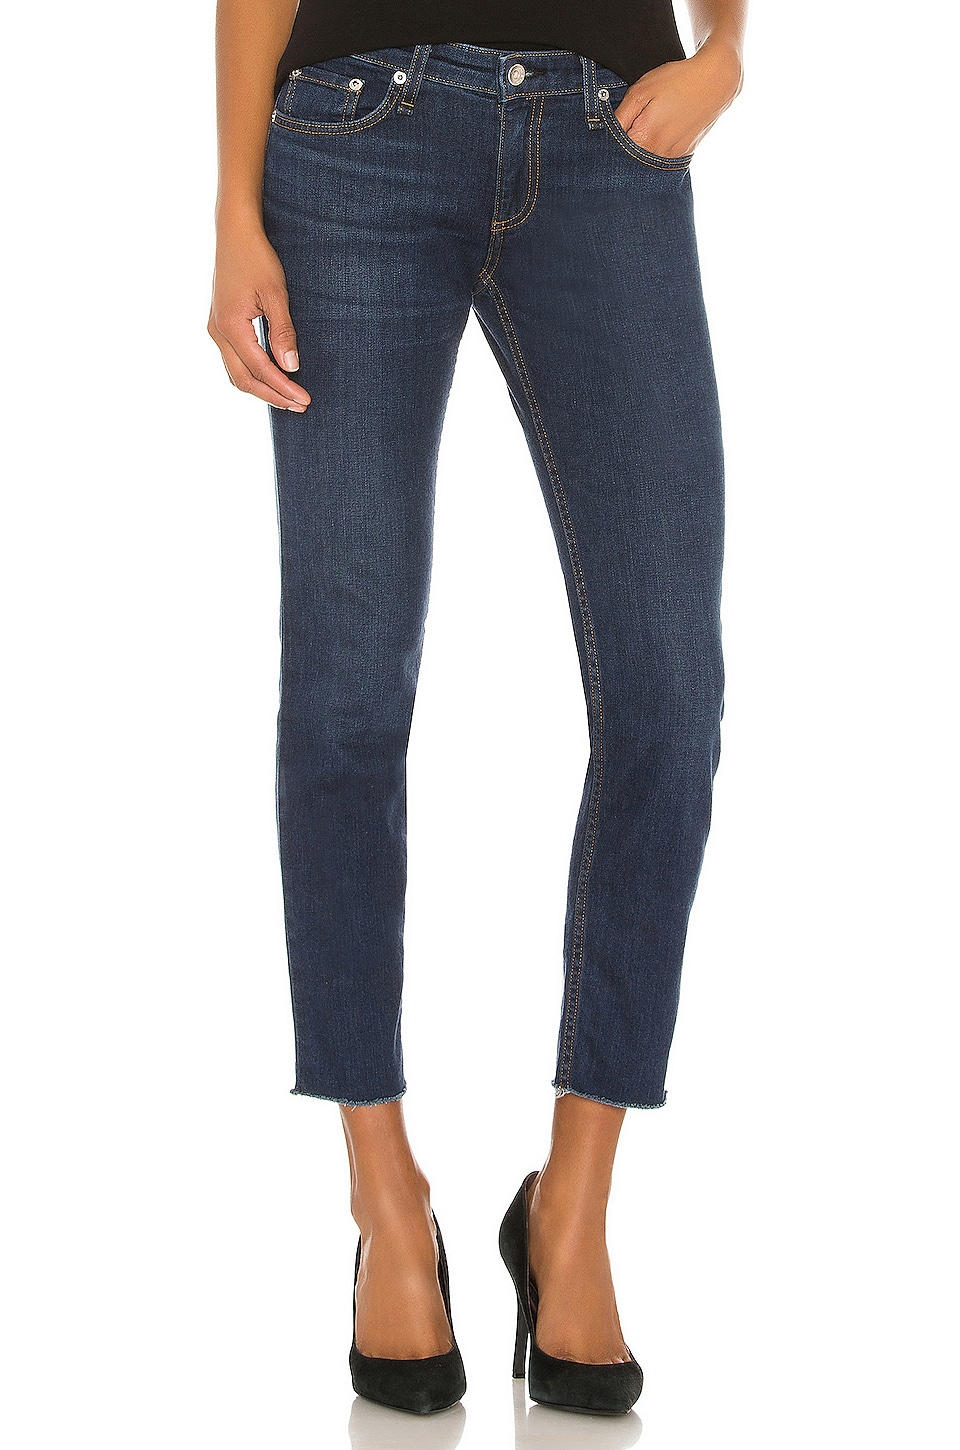 Rag & Bone Dre Low Rise Slim Boyfriend in New Worn